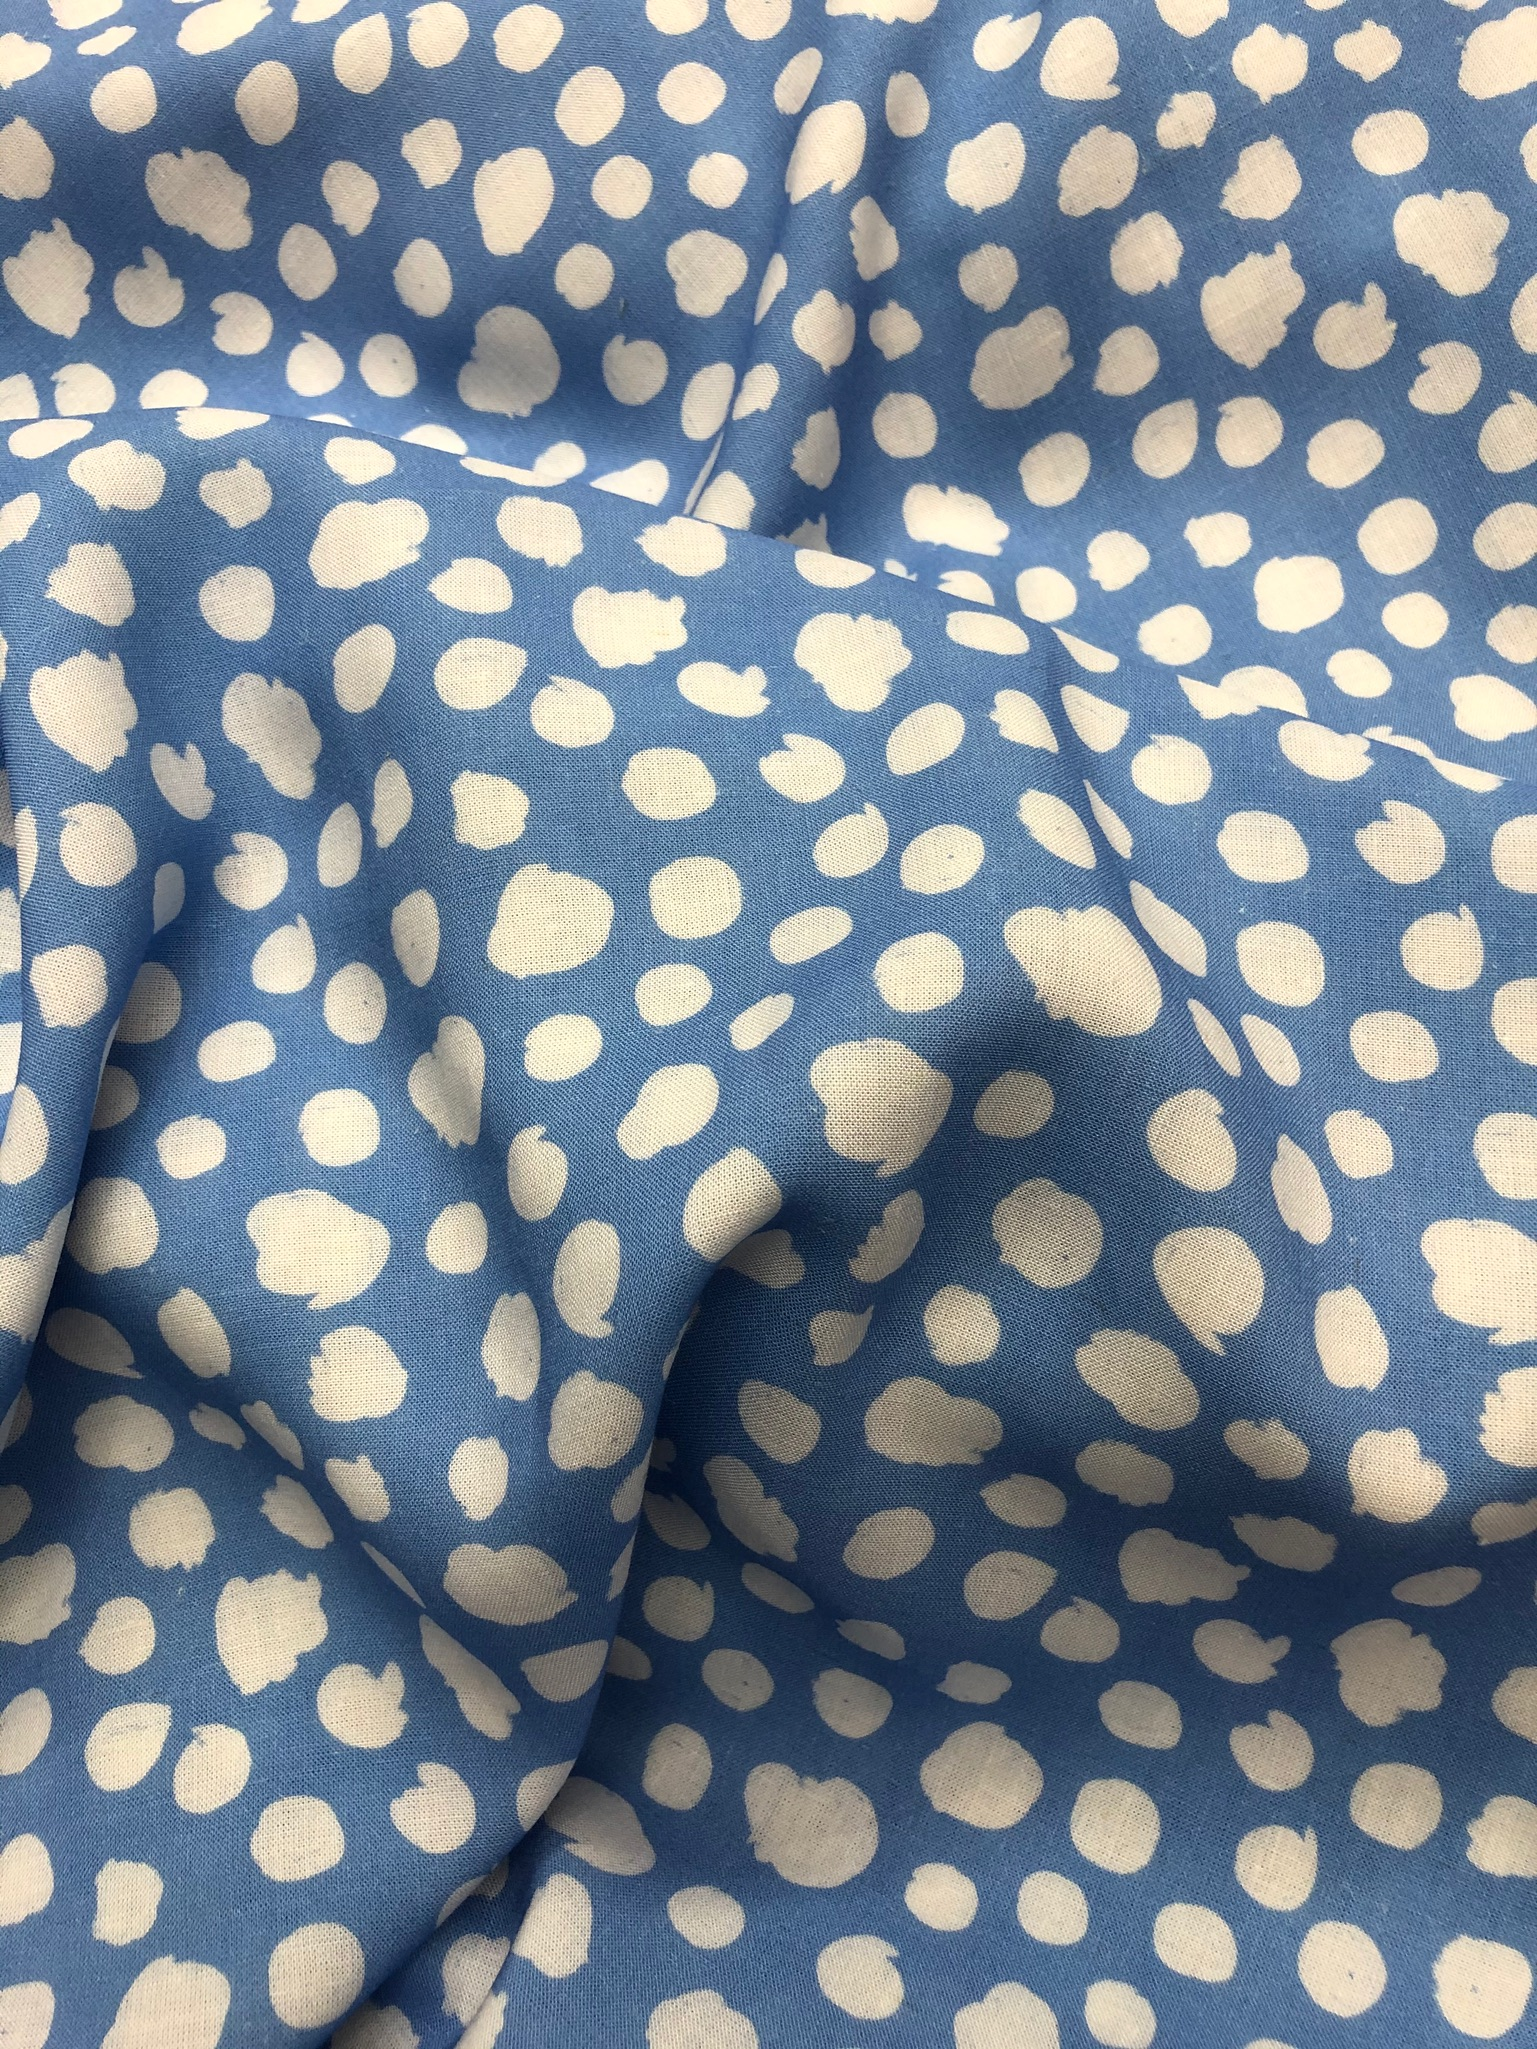 Pebbling in Summer Viscose/Linen Miix from Lady McElroy